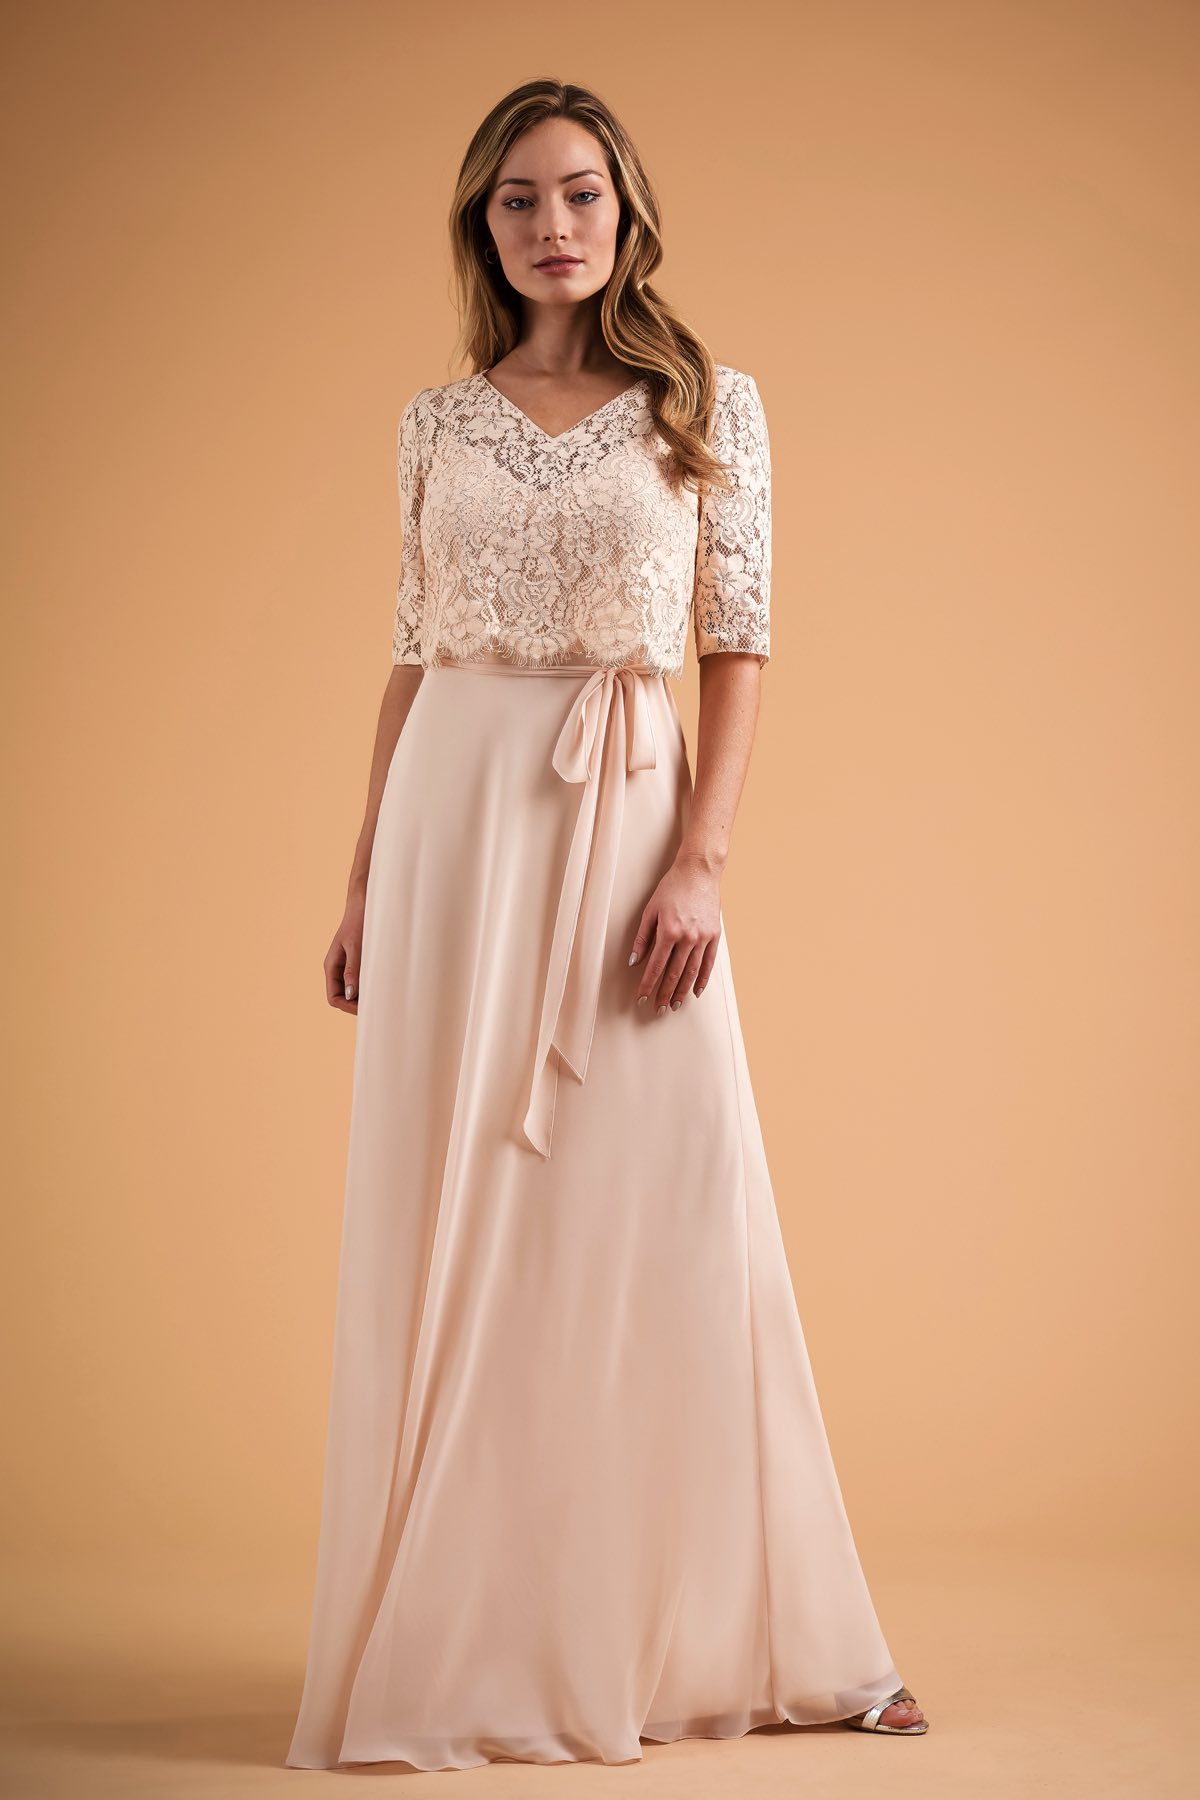 B223012 Two Piece 3 4 Sleeve Top With Poly Chiffon Dress And